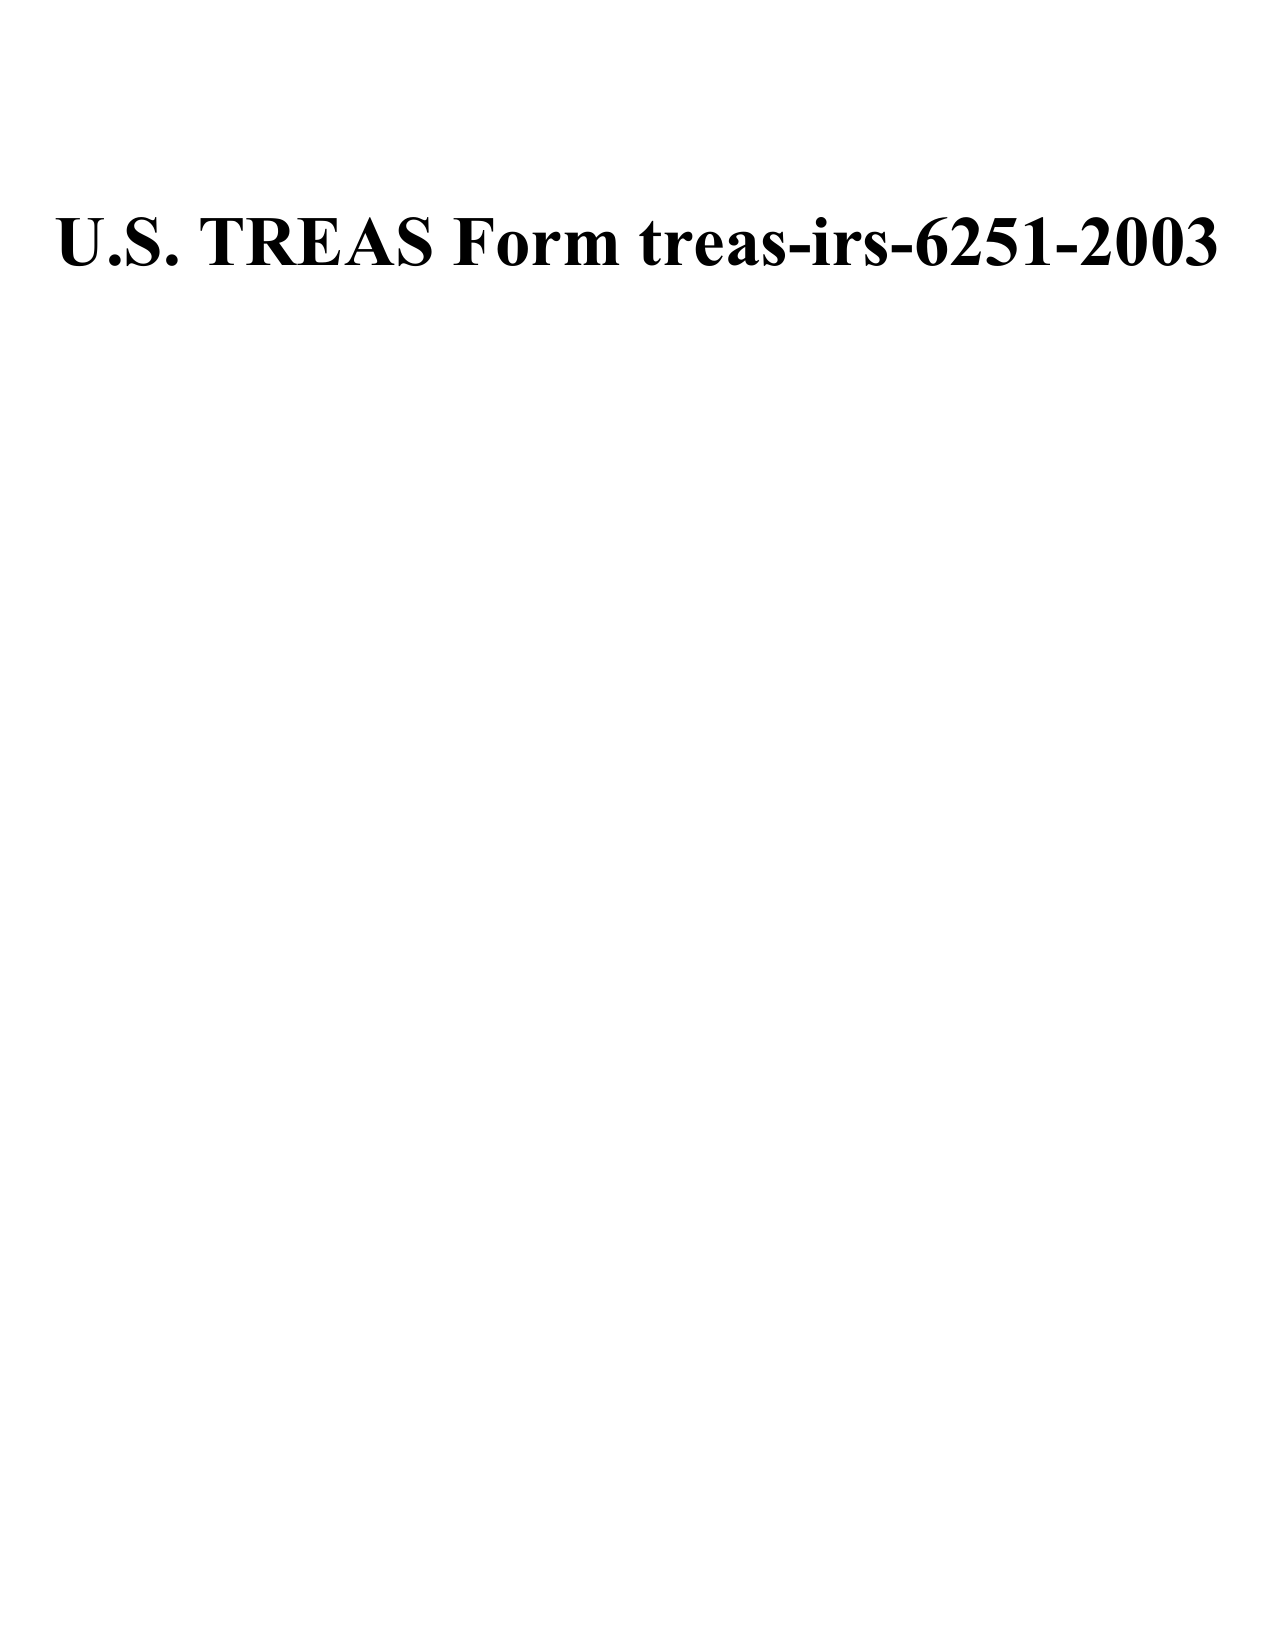 U.S. TREAS Form treas-irs-6251-2003